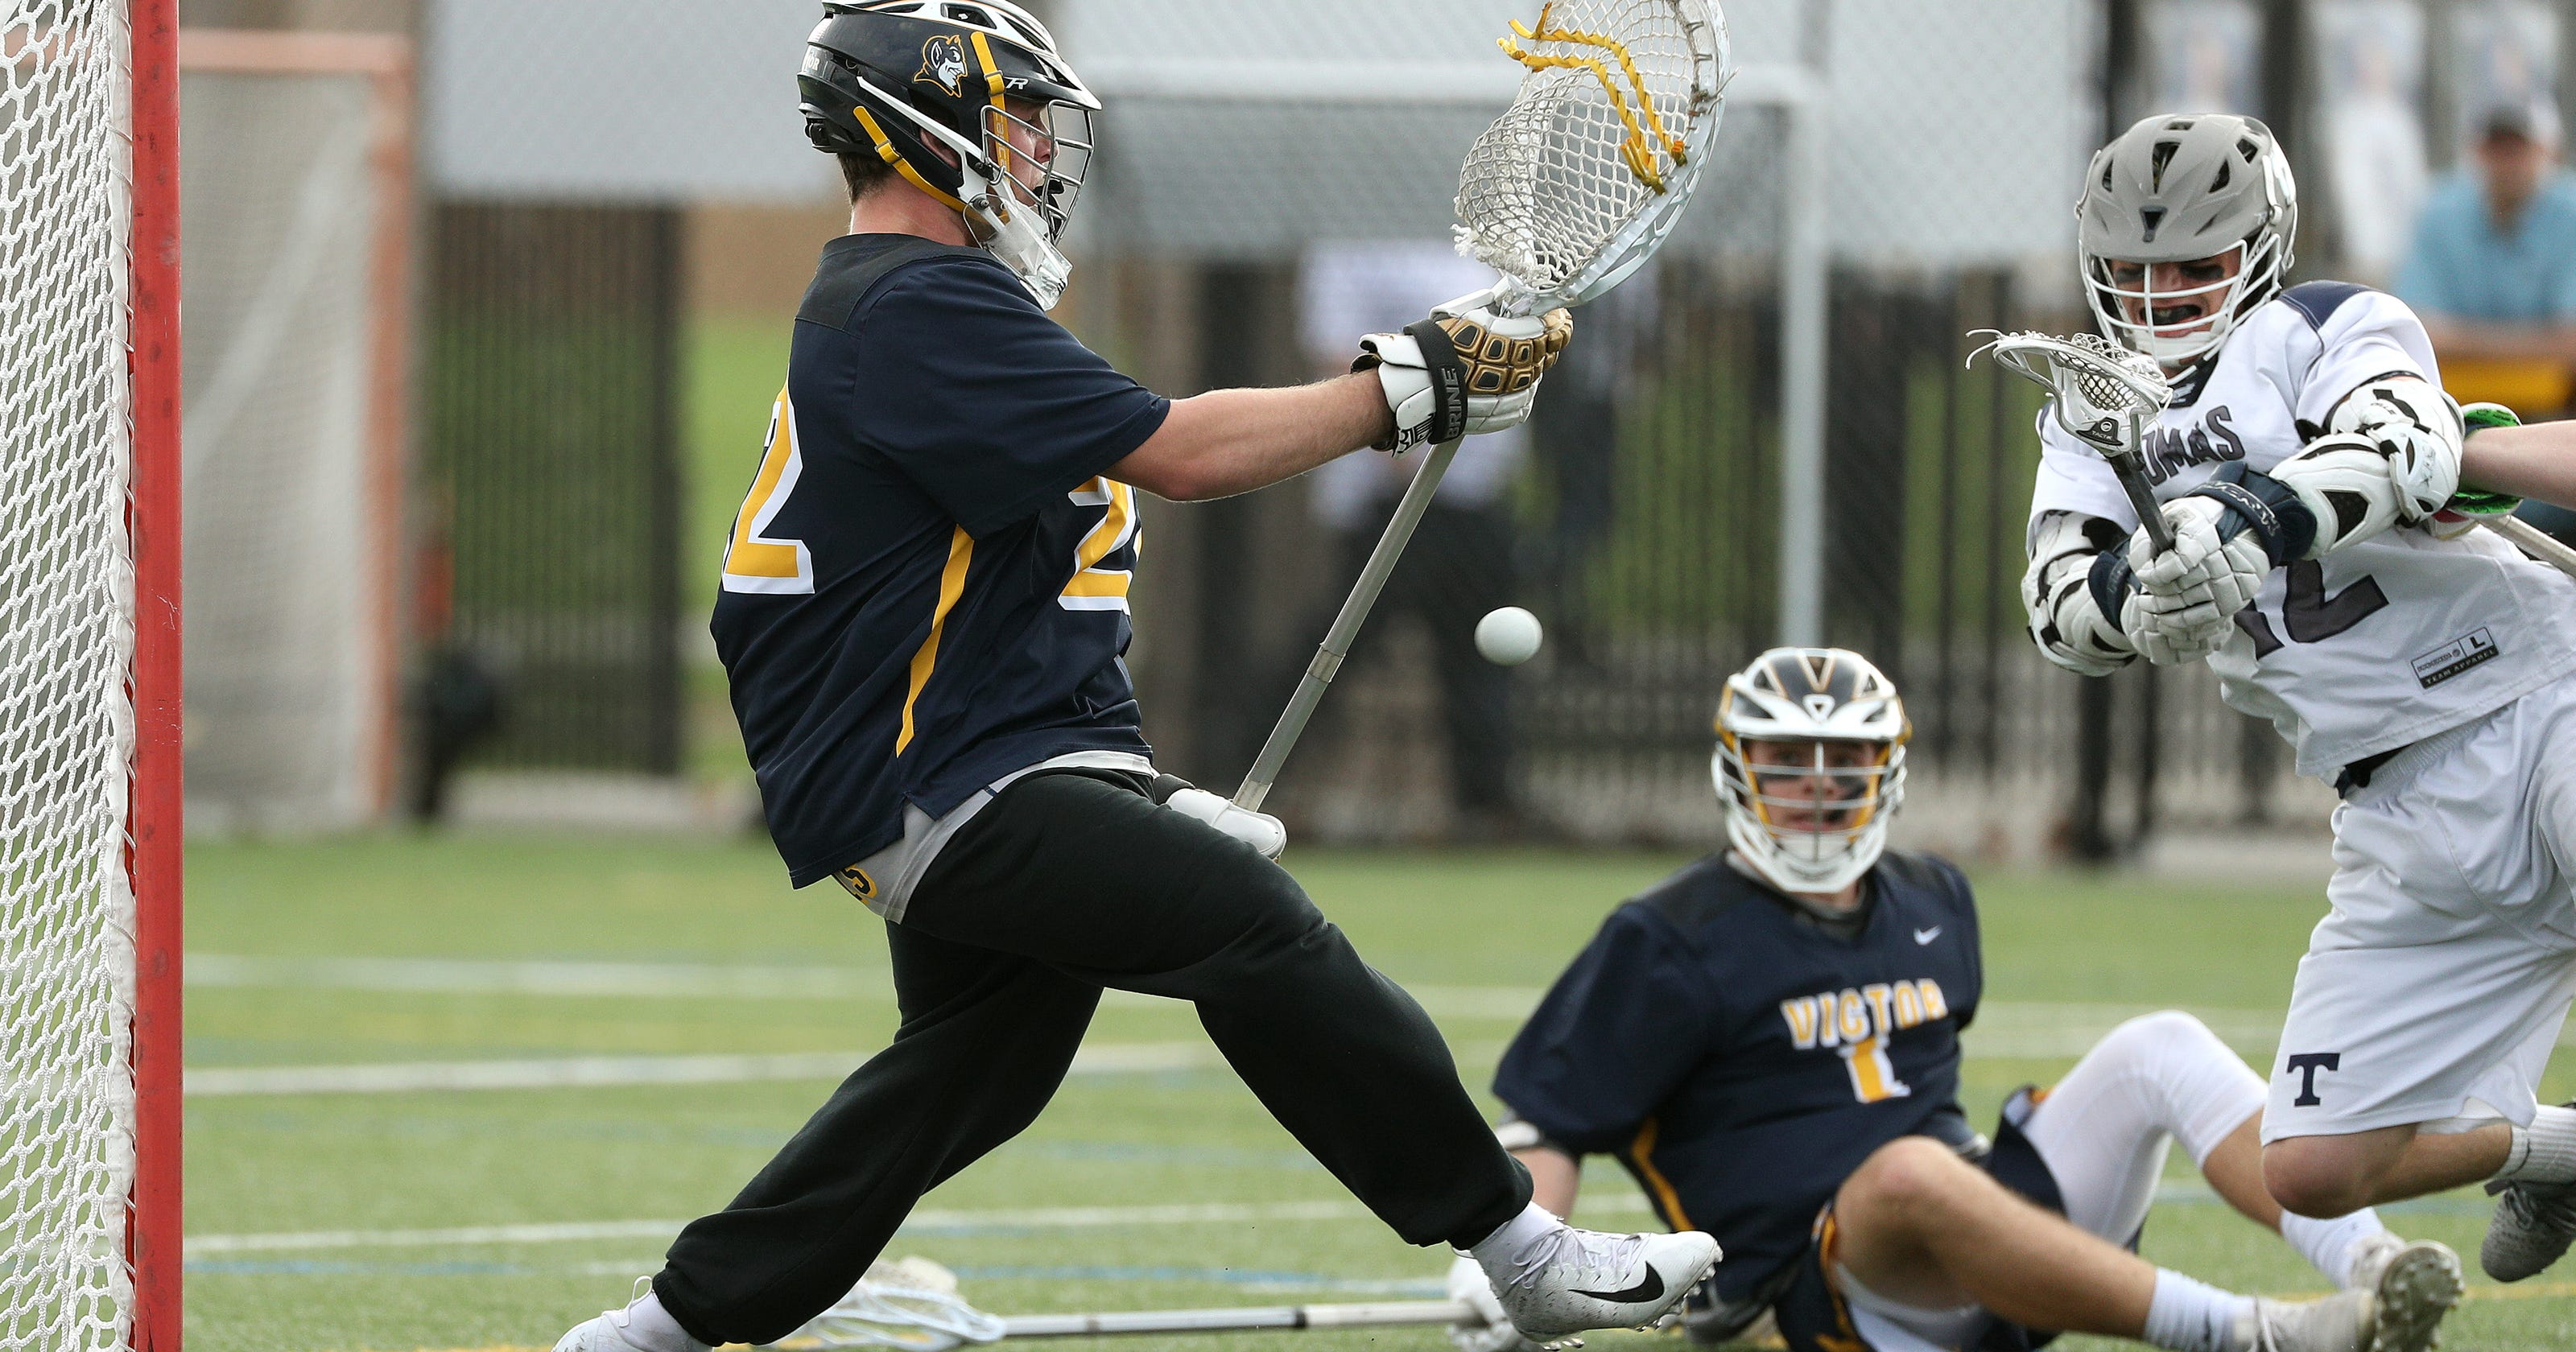 3337d1e7f51 Chayse Ierlan and Tanner Hay named to Under Armour All-America lacrosse game